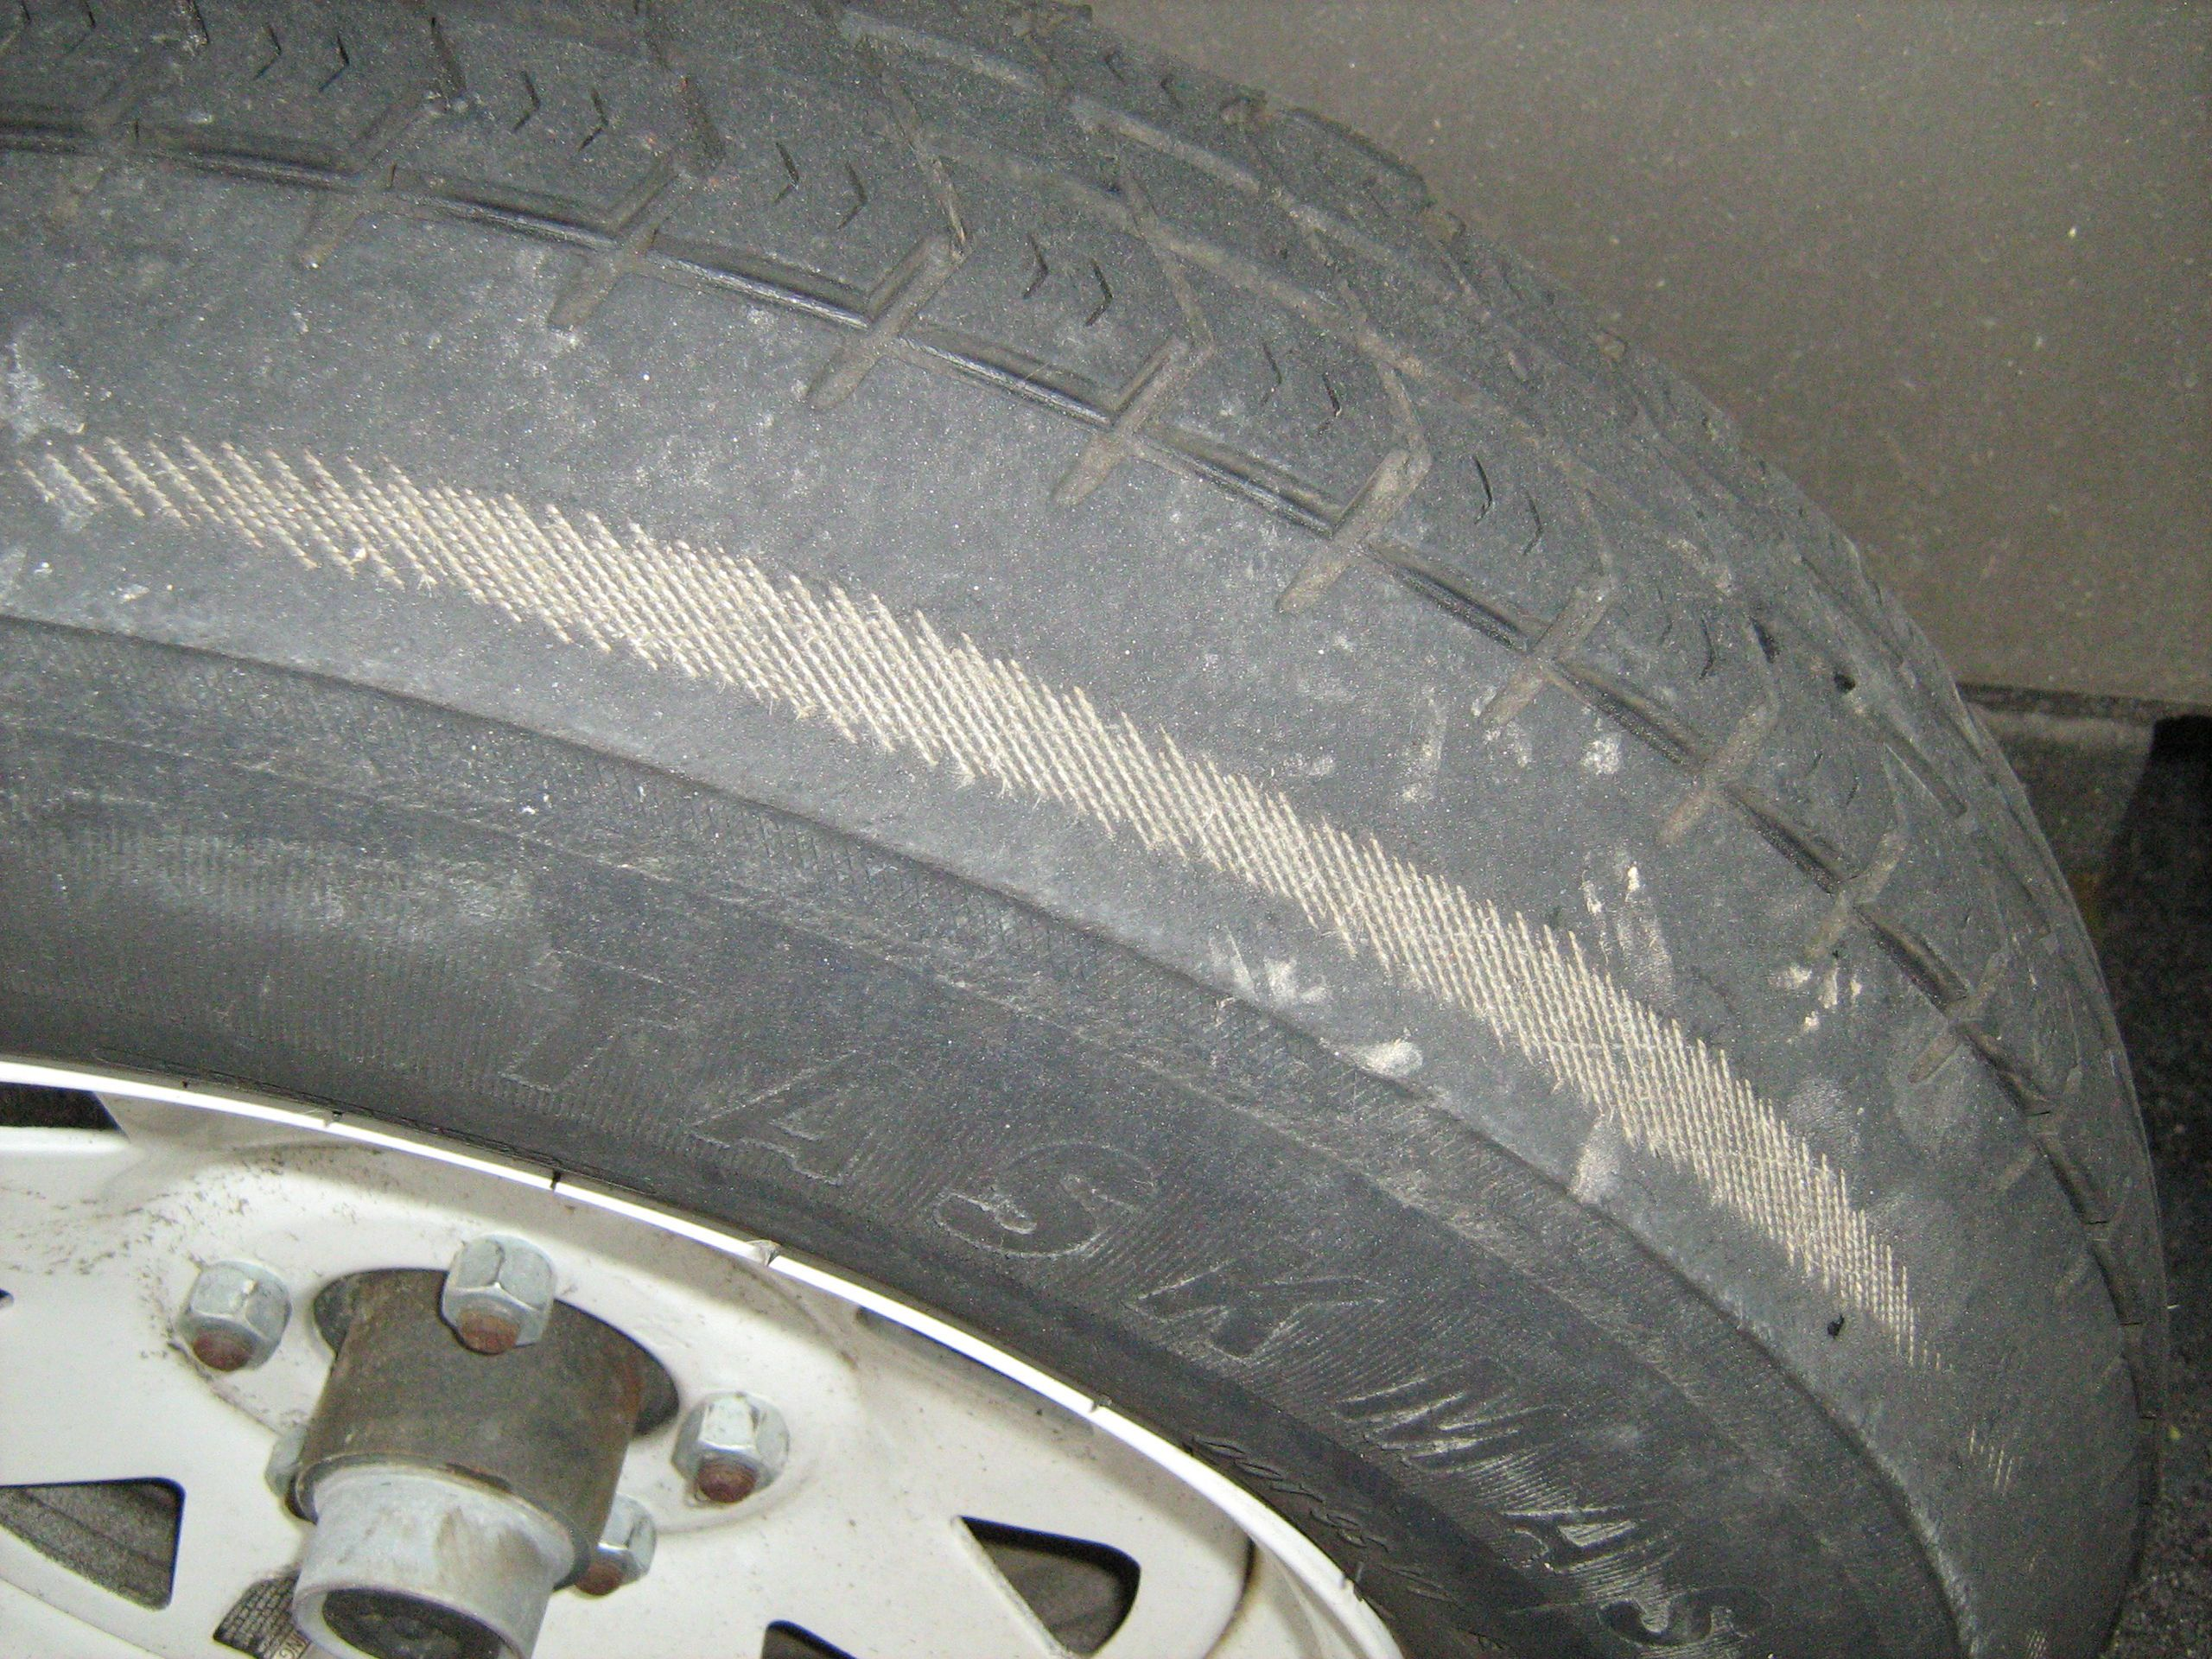 How to Drive Through a Tire Blowout